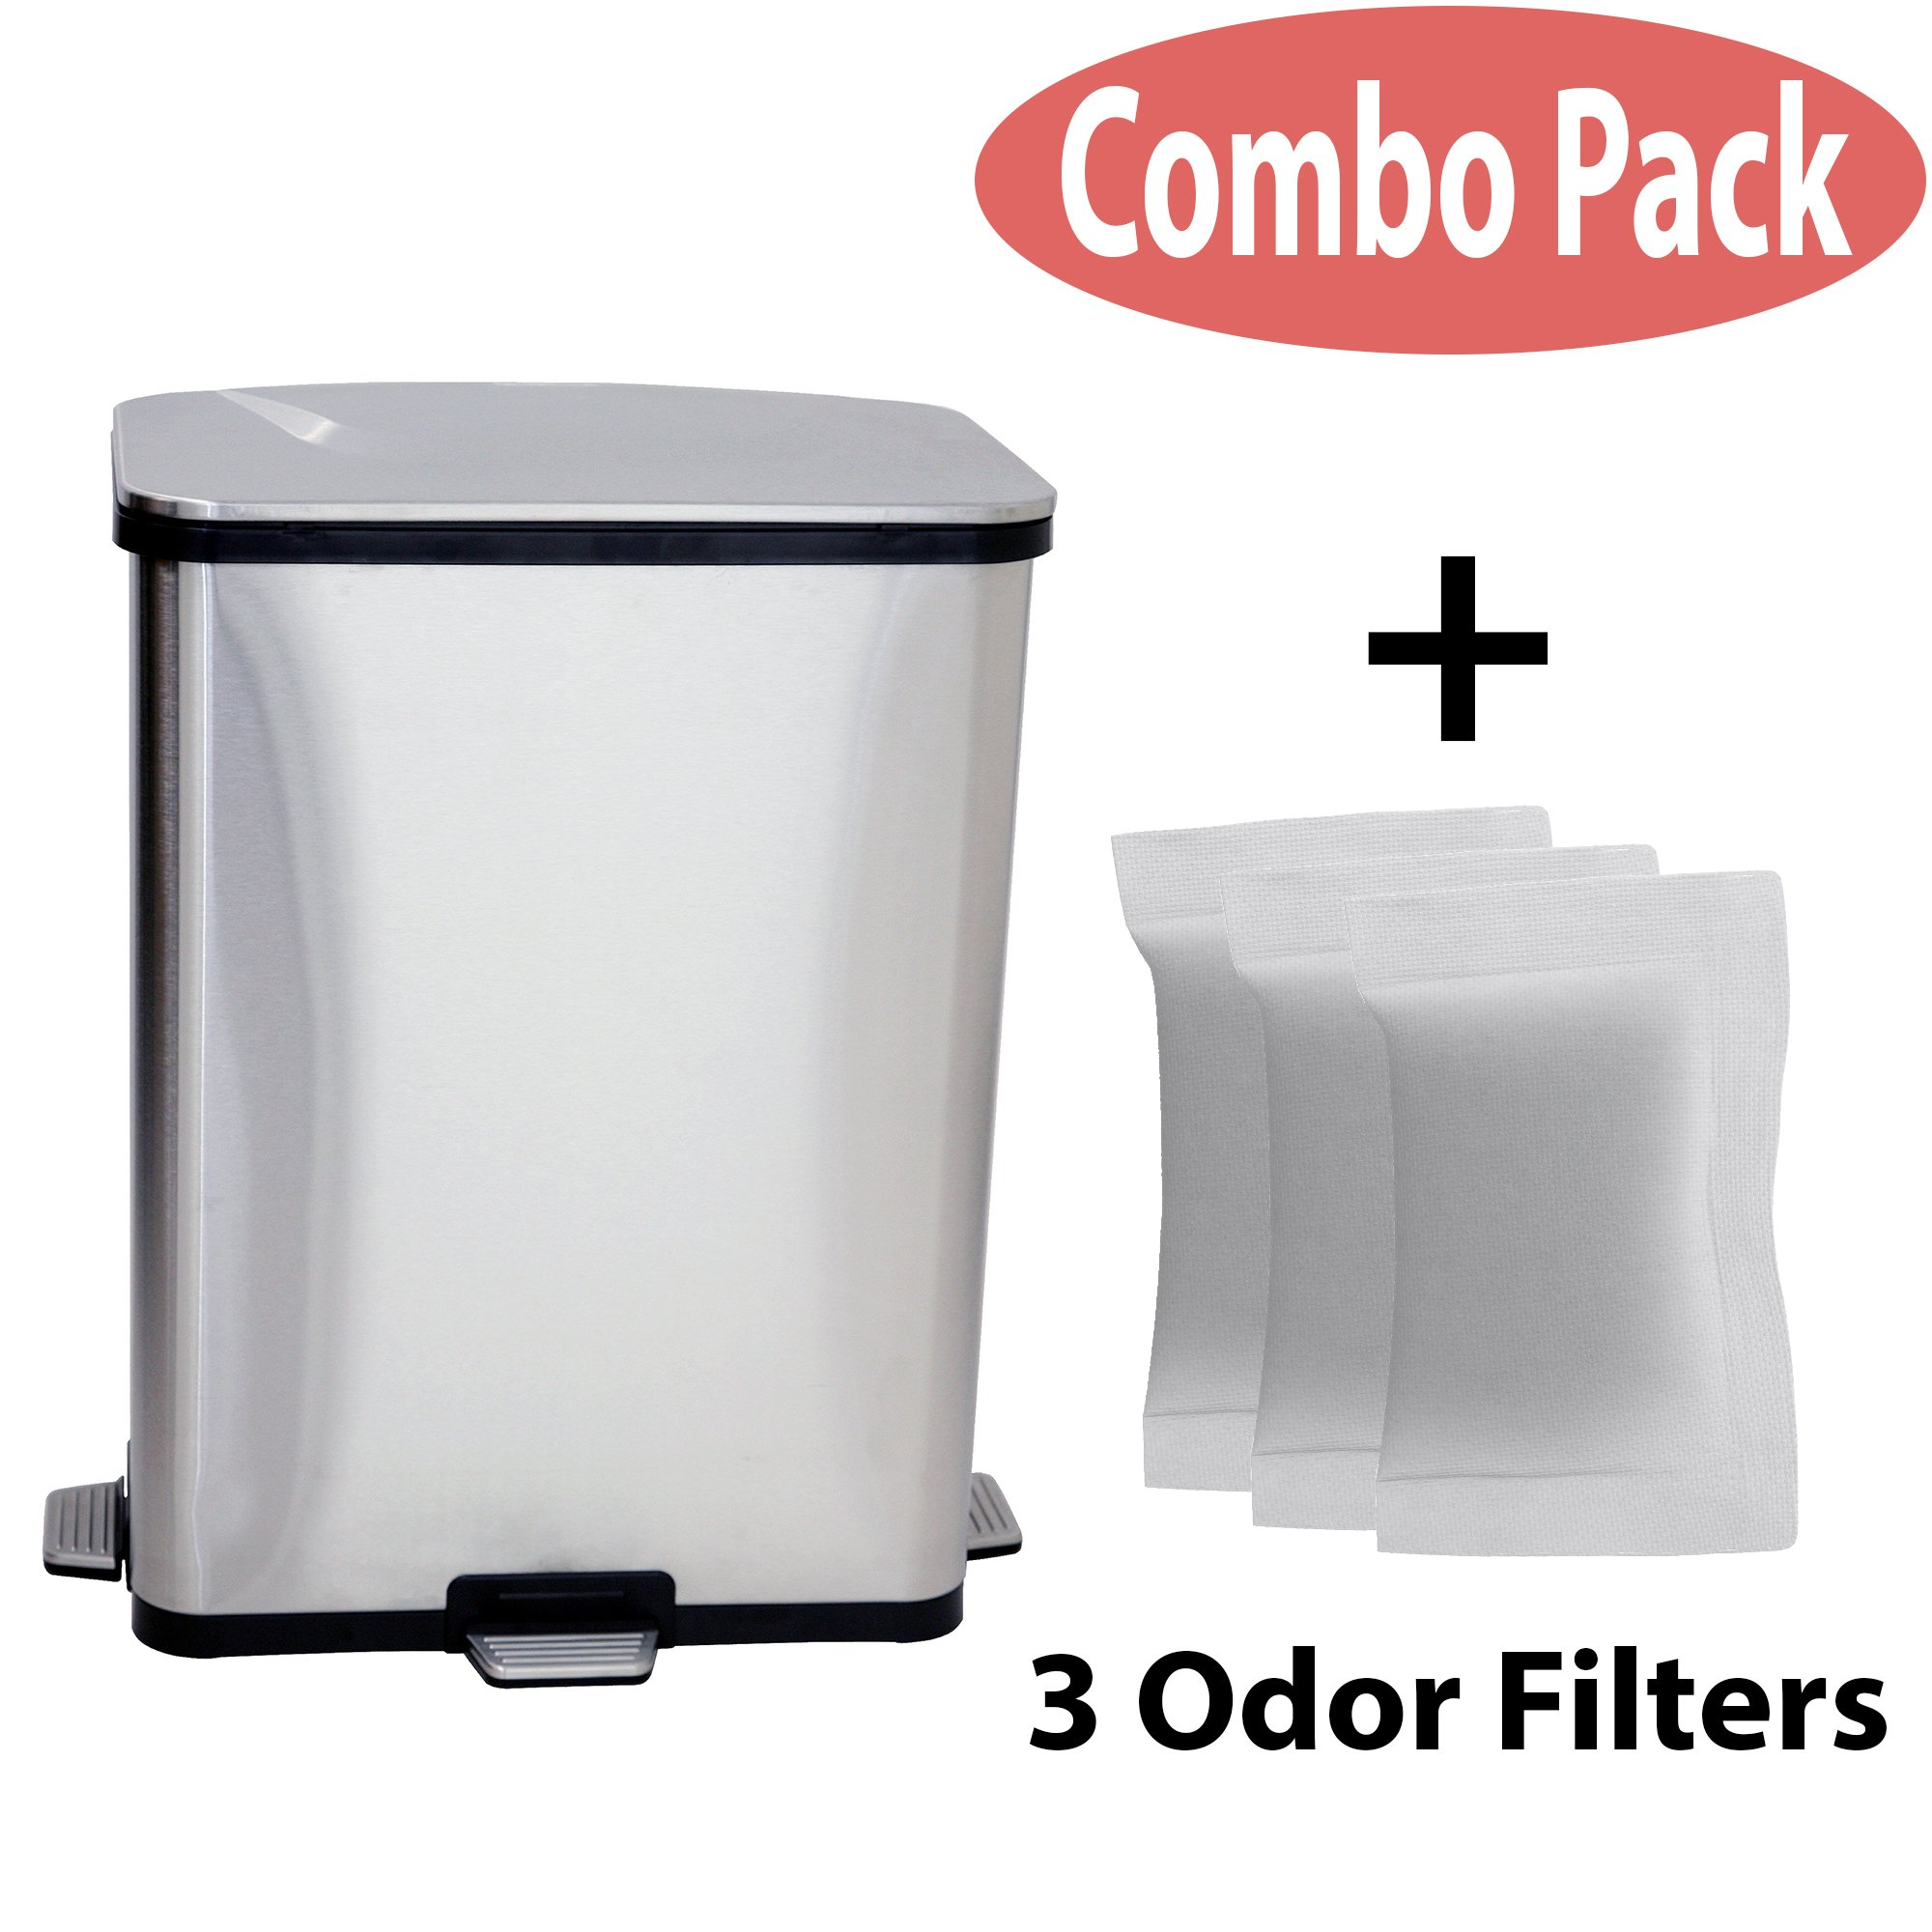 iTouchless Battery-Free 13 Gallon Step Sensor Stainless Steel Trash Can, Automatic Kitchen Trash Can includes Unique Sensor Pedals, AC Adapter and 3 Odor Filters